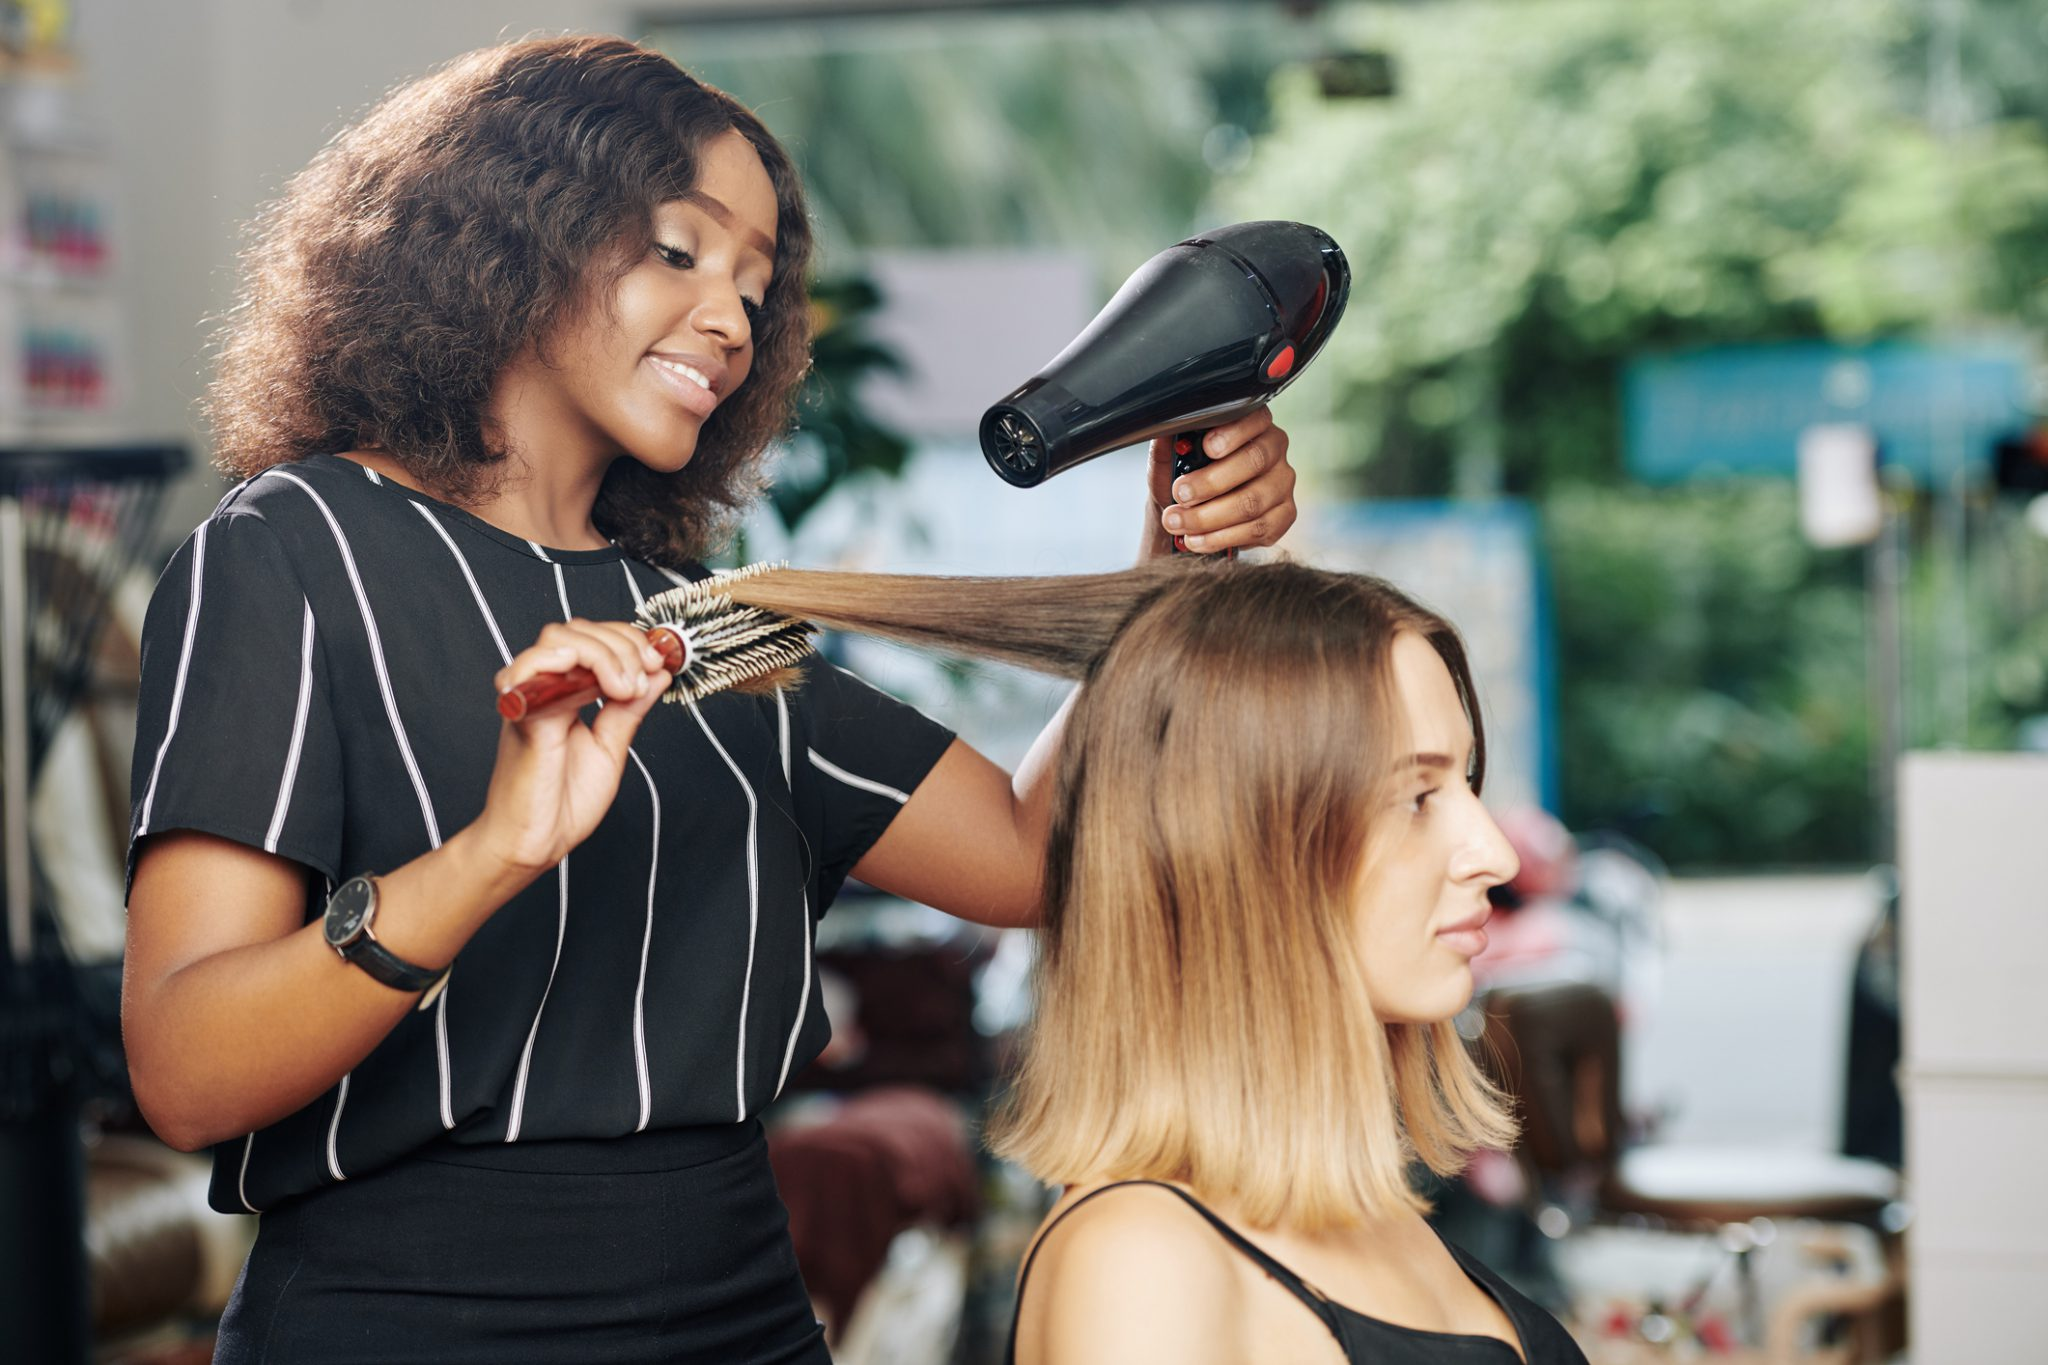 What Are the Typical Duties of a Cosmetologist?